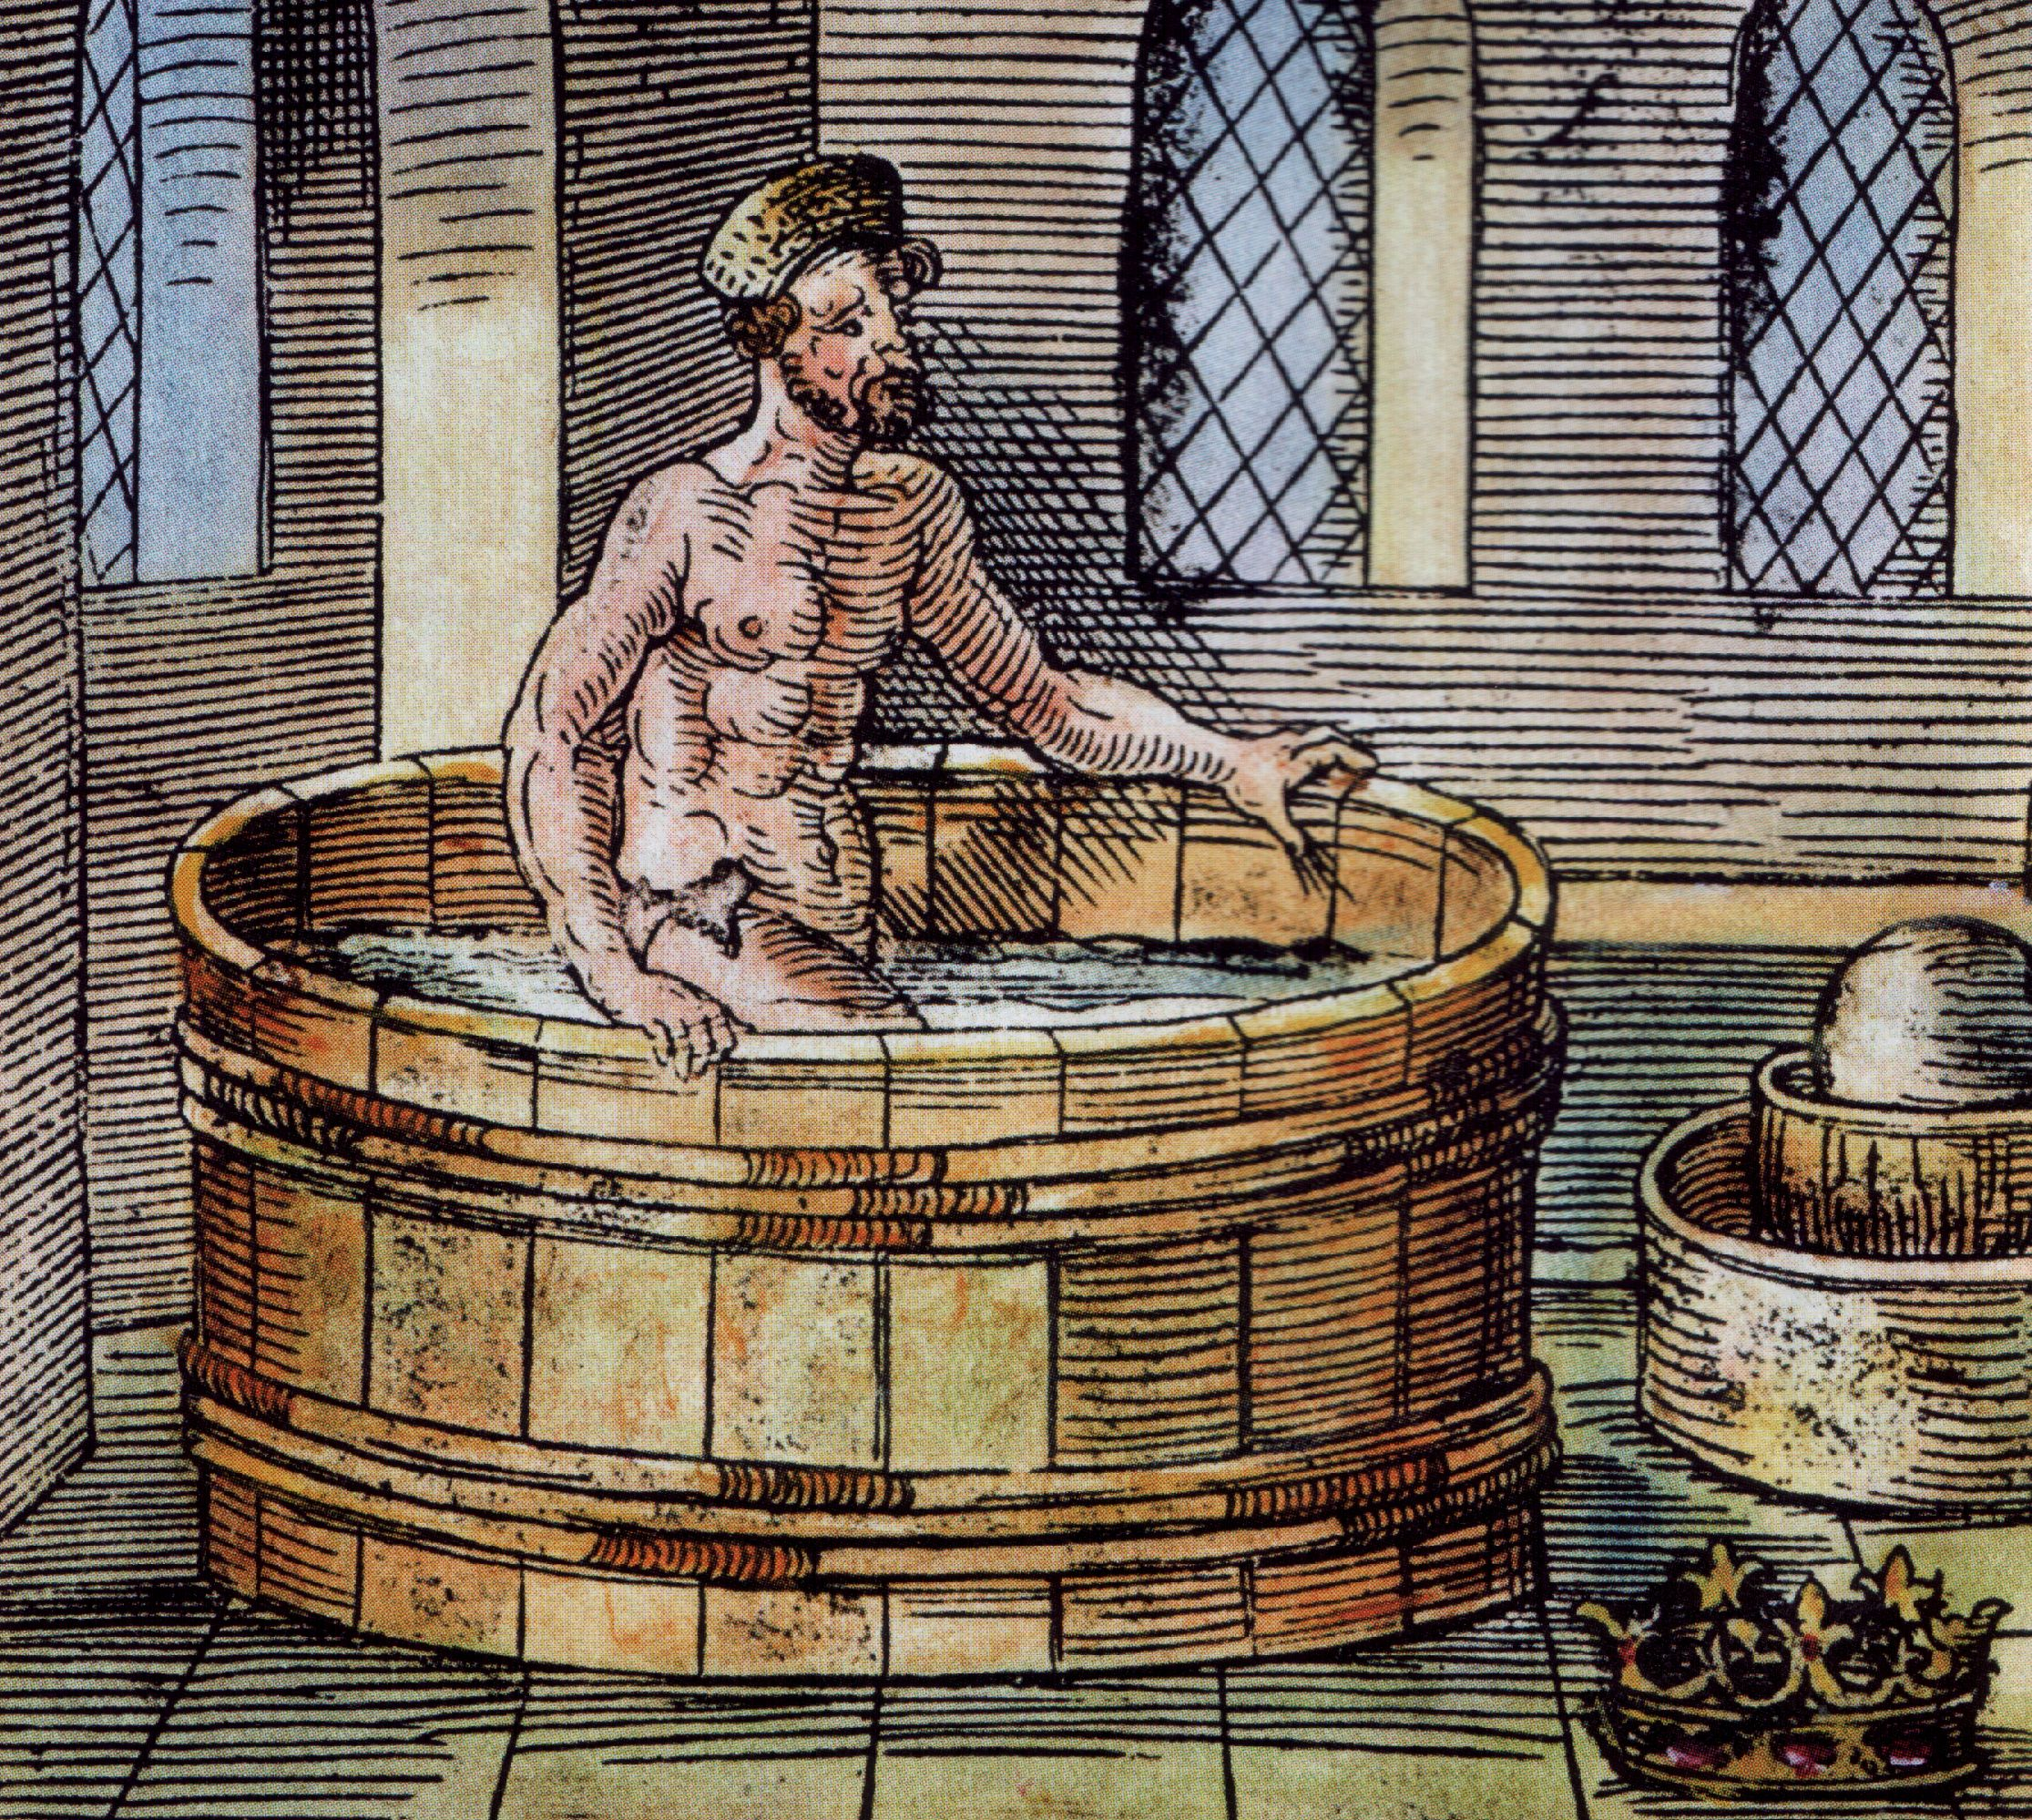 Archimede's discovering displacement, in a tub